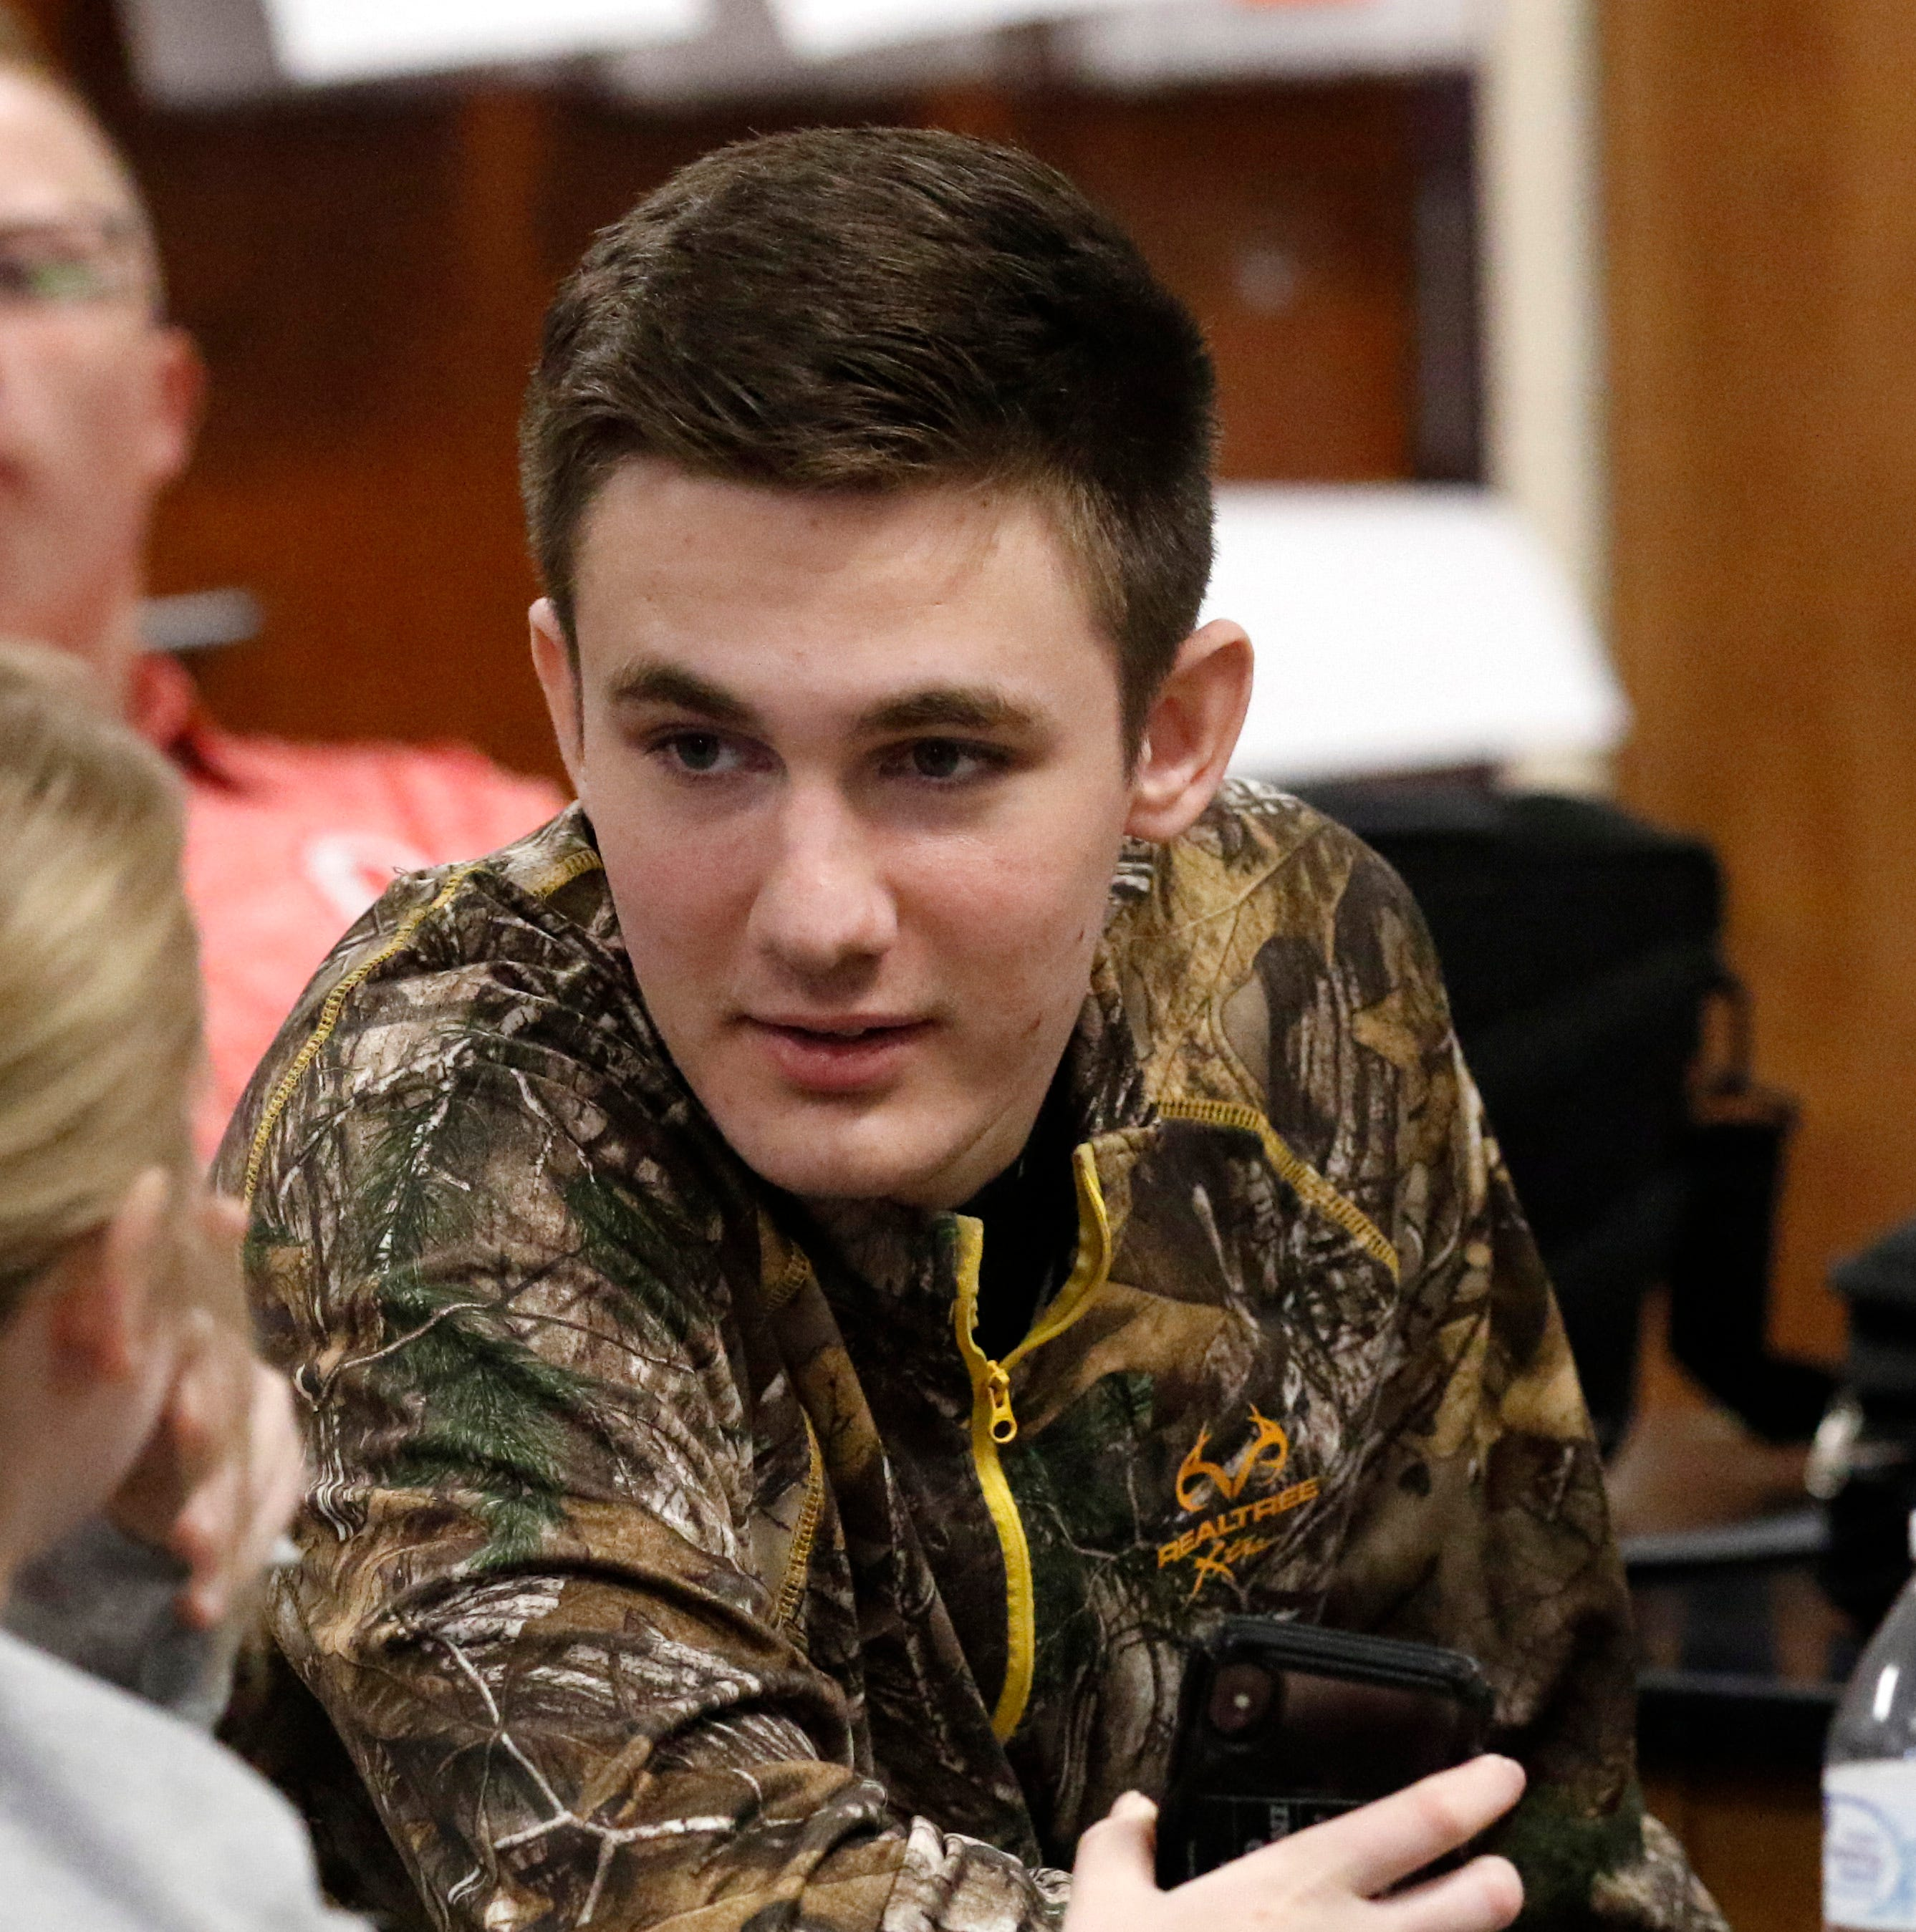 Amanda-Clearcreek senior Bryson L'Huillier's injuries led to interest in the medical field